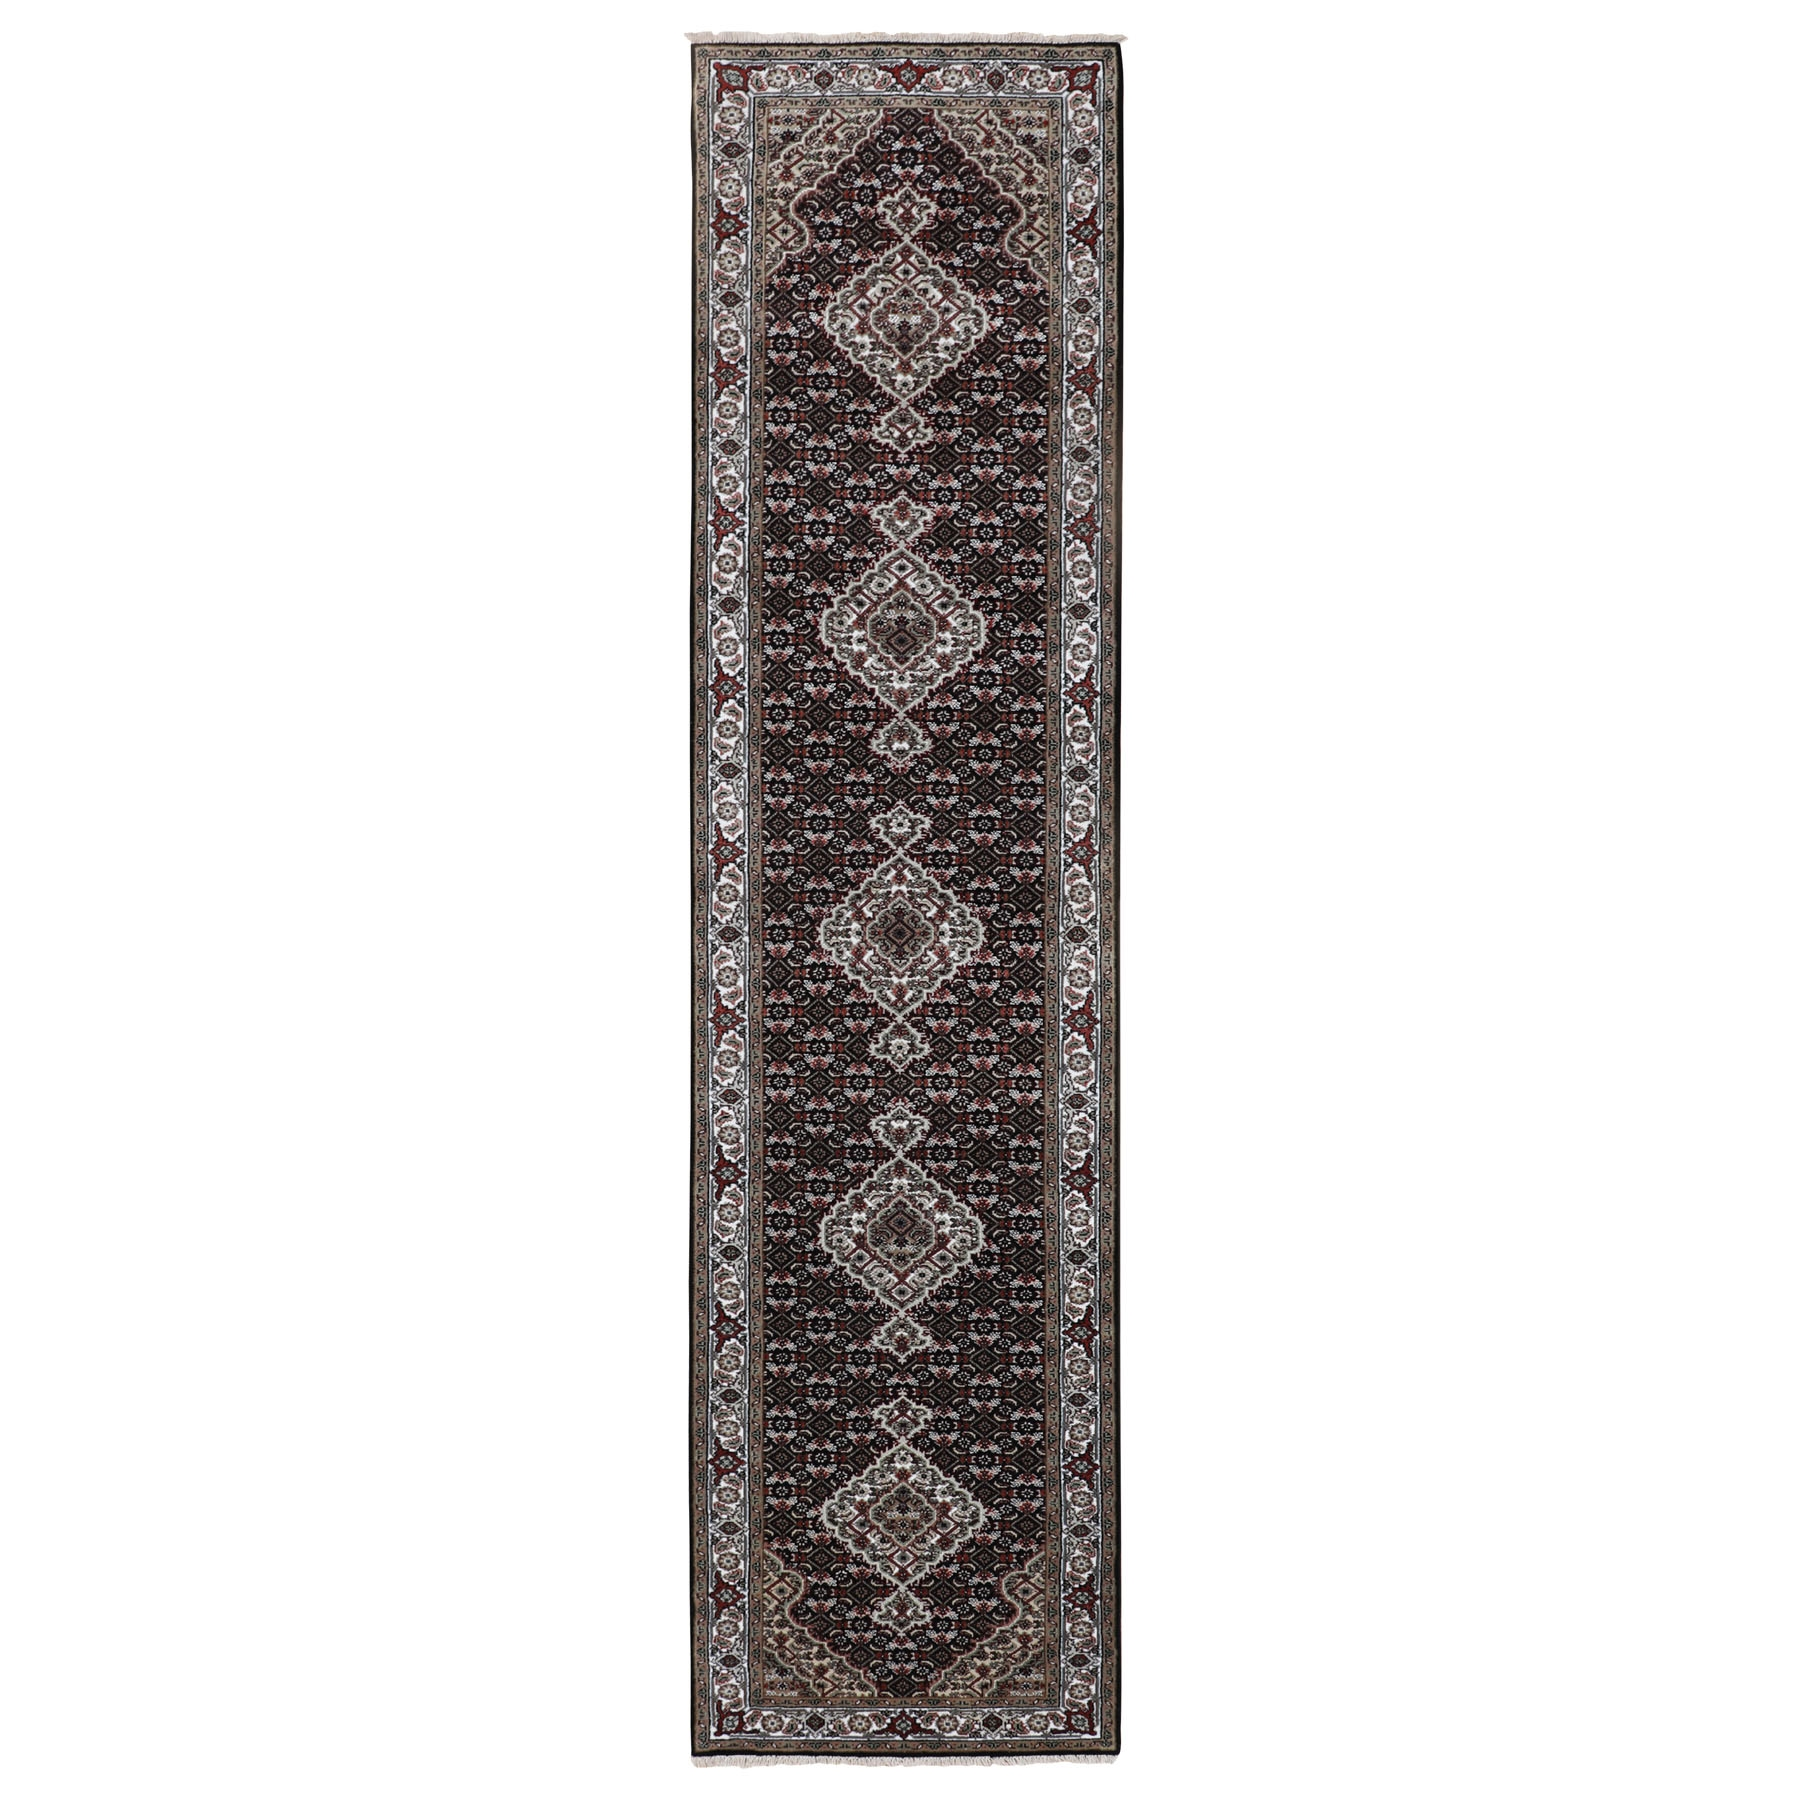 Pirniakan Collection Hand Knotted Black Rug No: 1116604